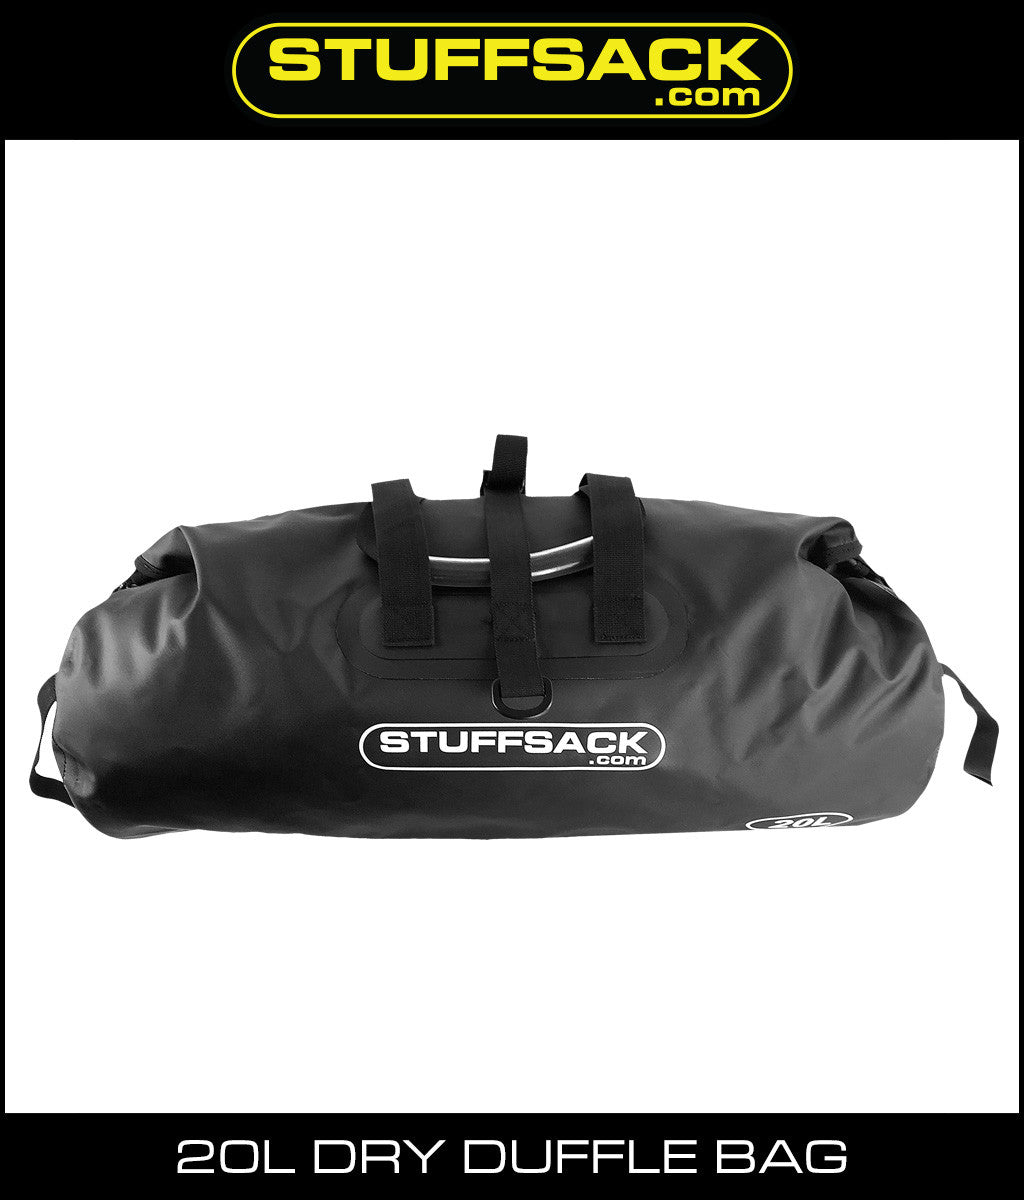 Stuffsack.com Dry Duffle Bag - 20L Black